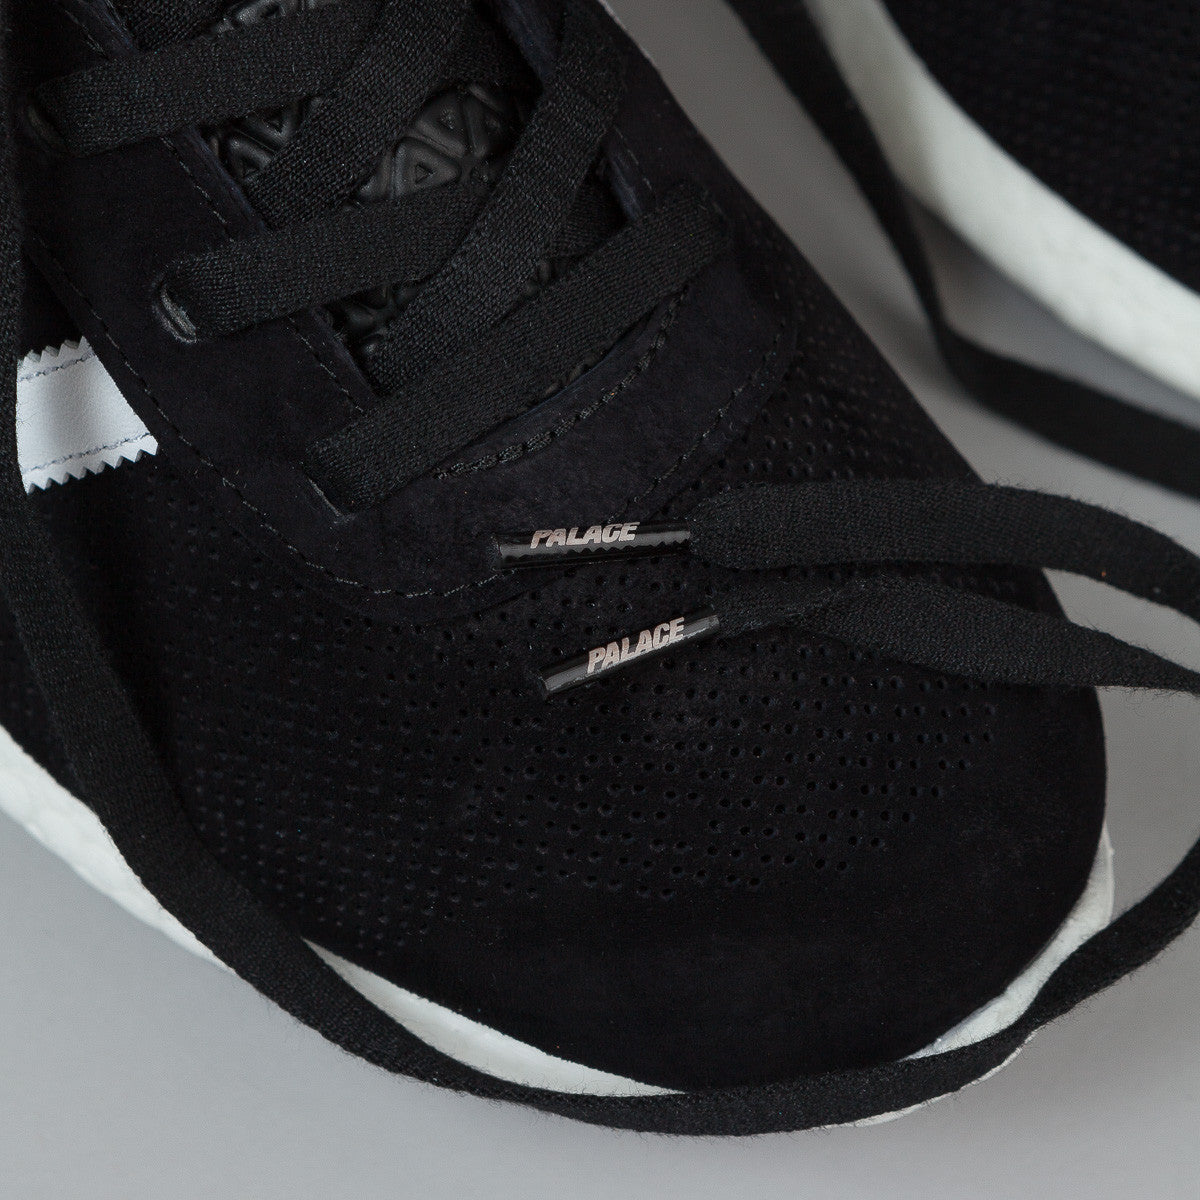 Adidas X Palace Pro Boost Shoes - Black / White / Gold